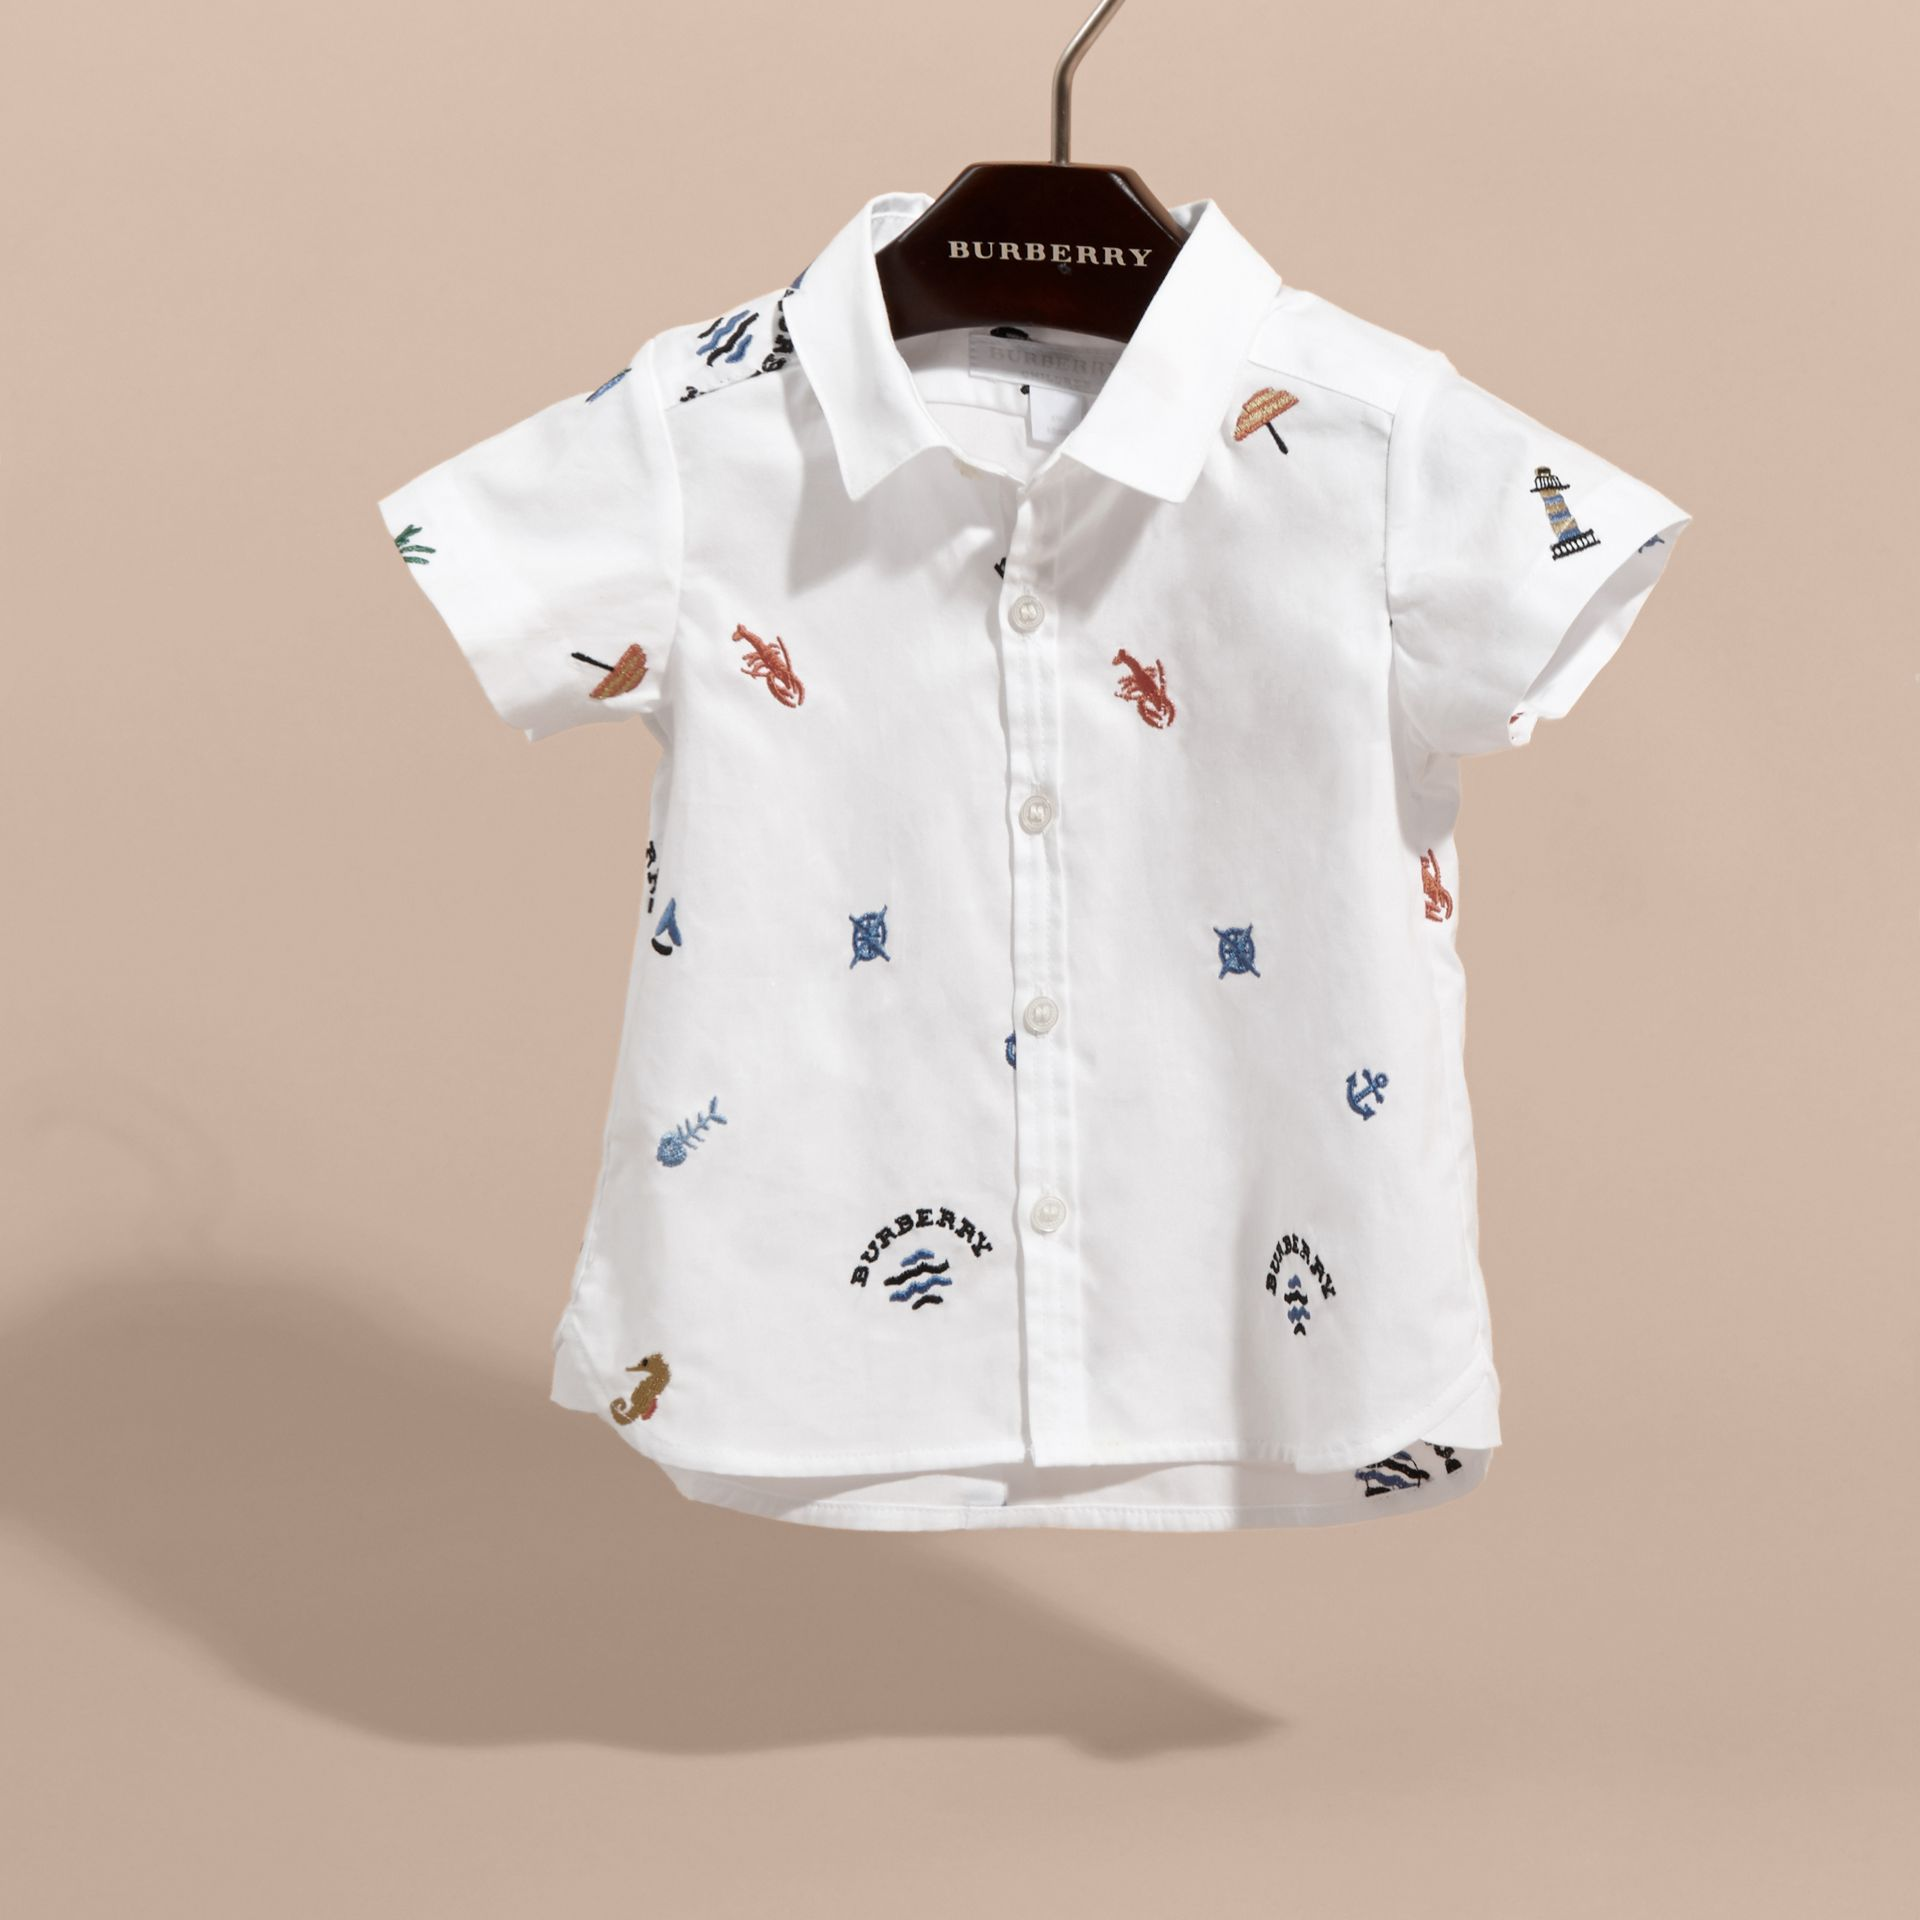 Embroidered Nautical Motif Cotton Oxford Shirt | Burberry - gallery image 3